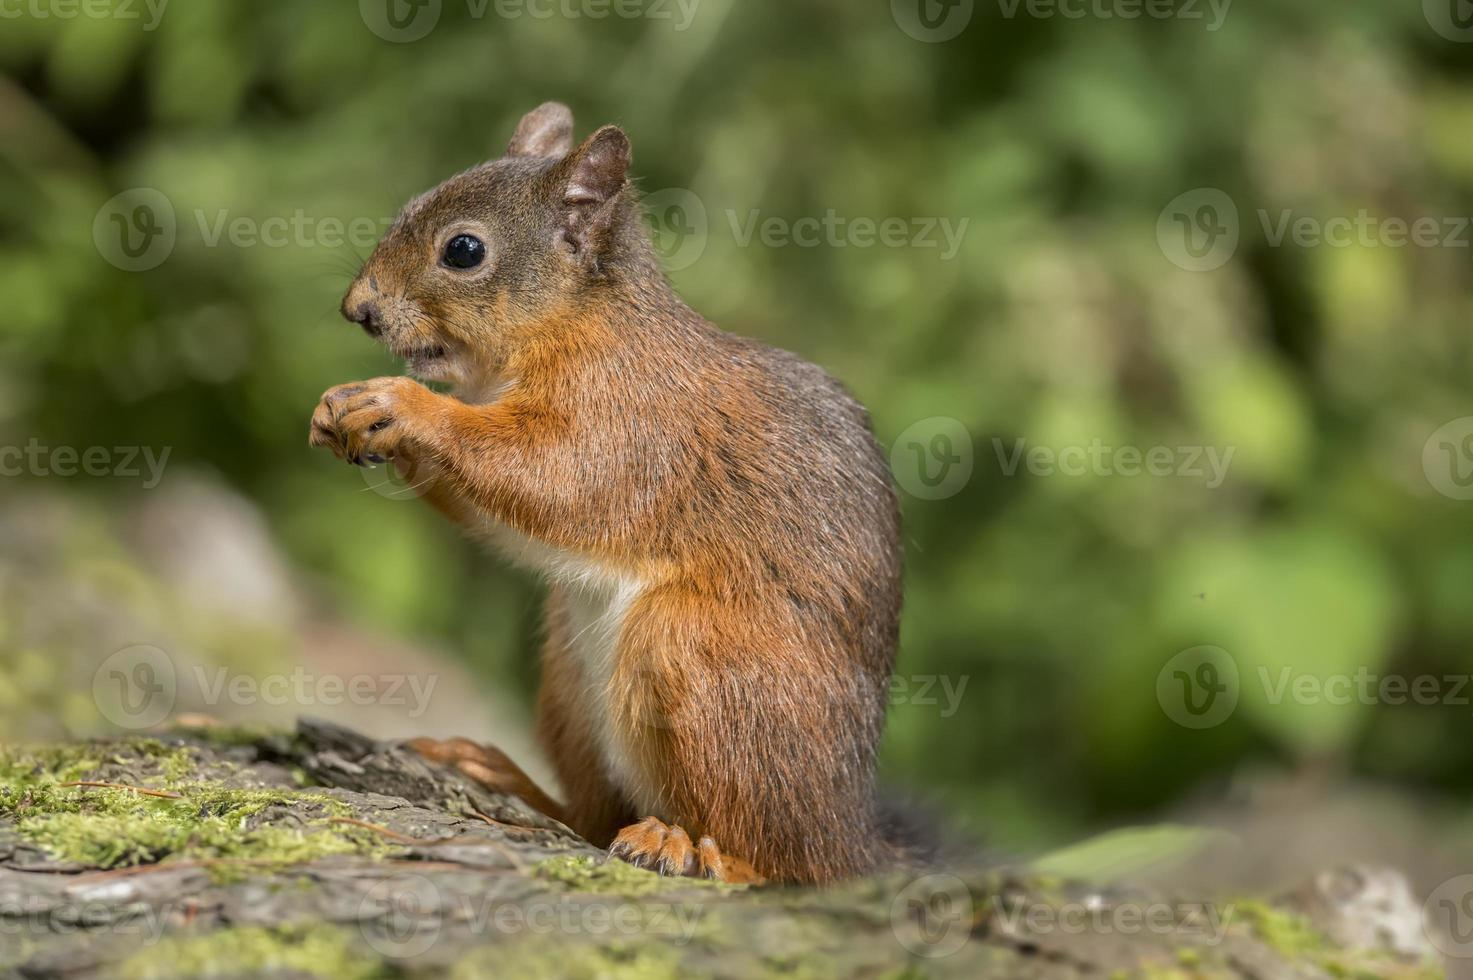 Red squirrel, sitting on a tree trunk eating a nut photo